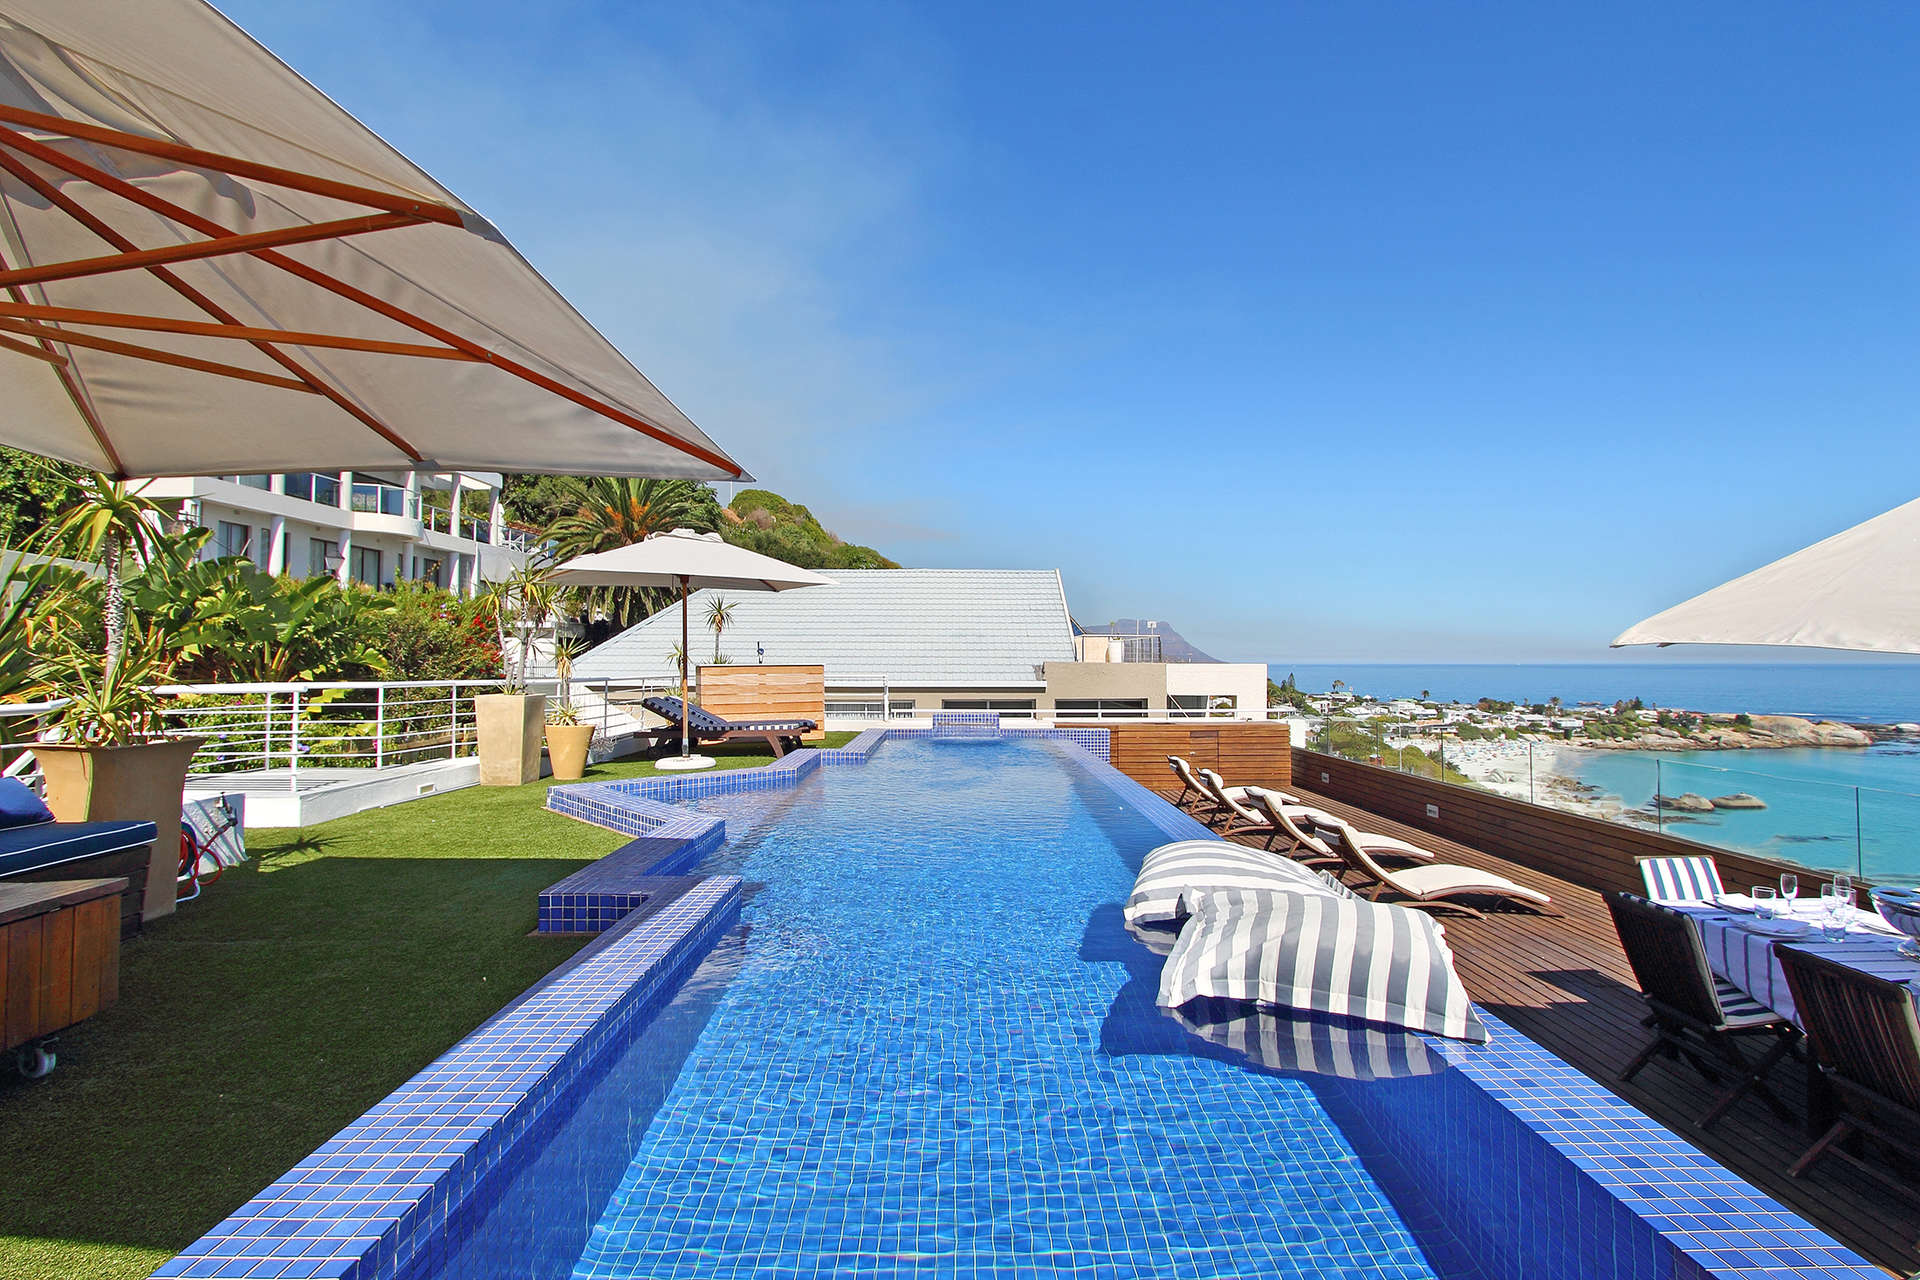 Luxury villa rentals africa - South africa - Capetown - Clifton - Whitecliffs Penthouse - Image 1/31